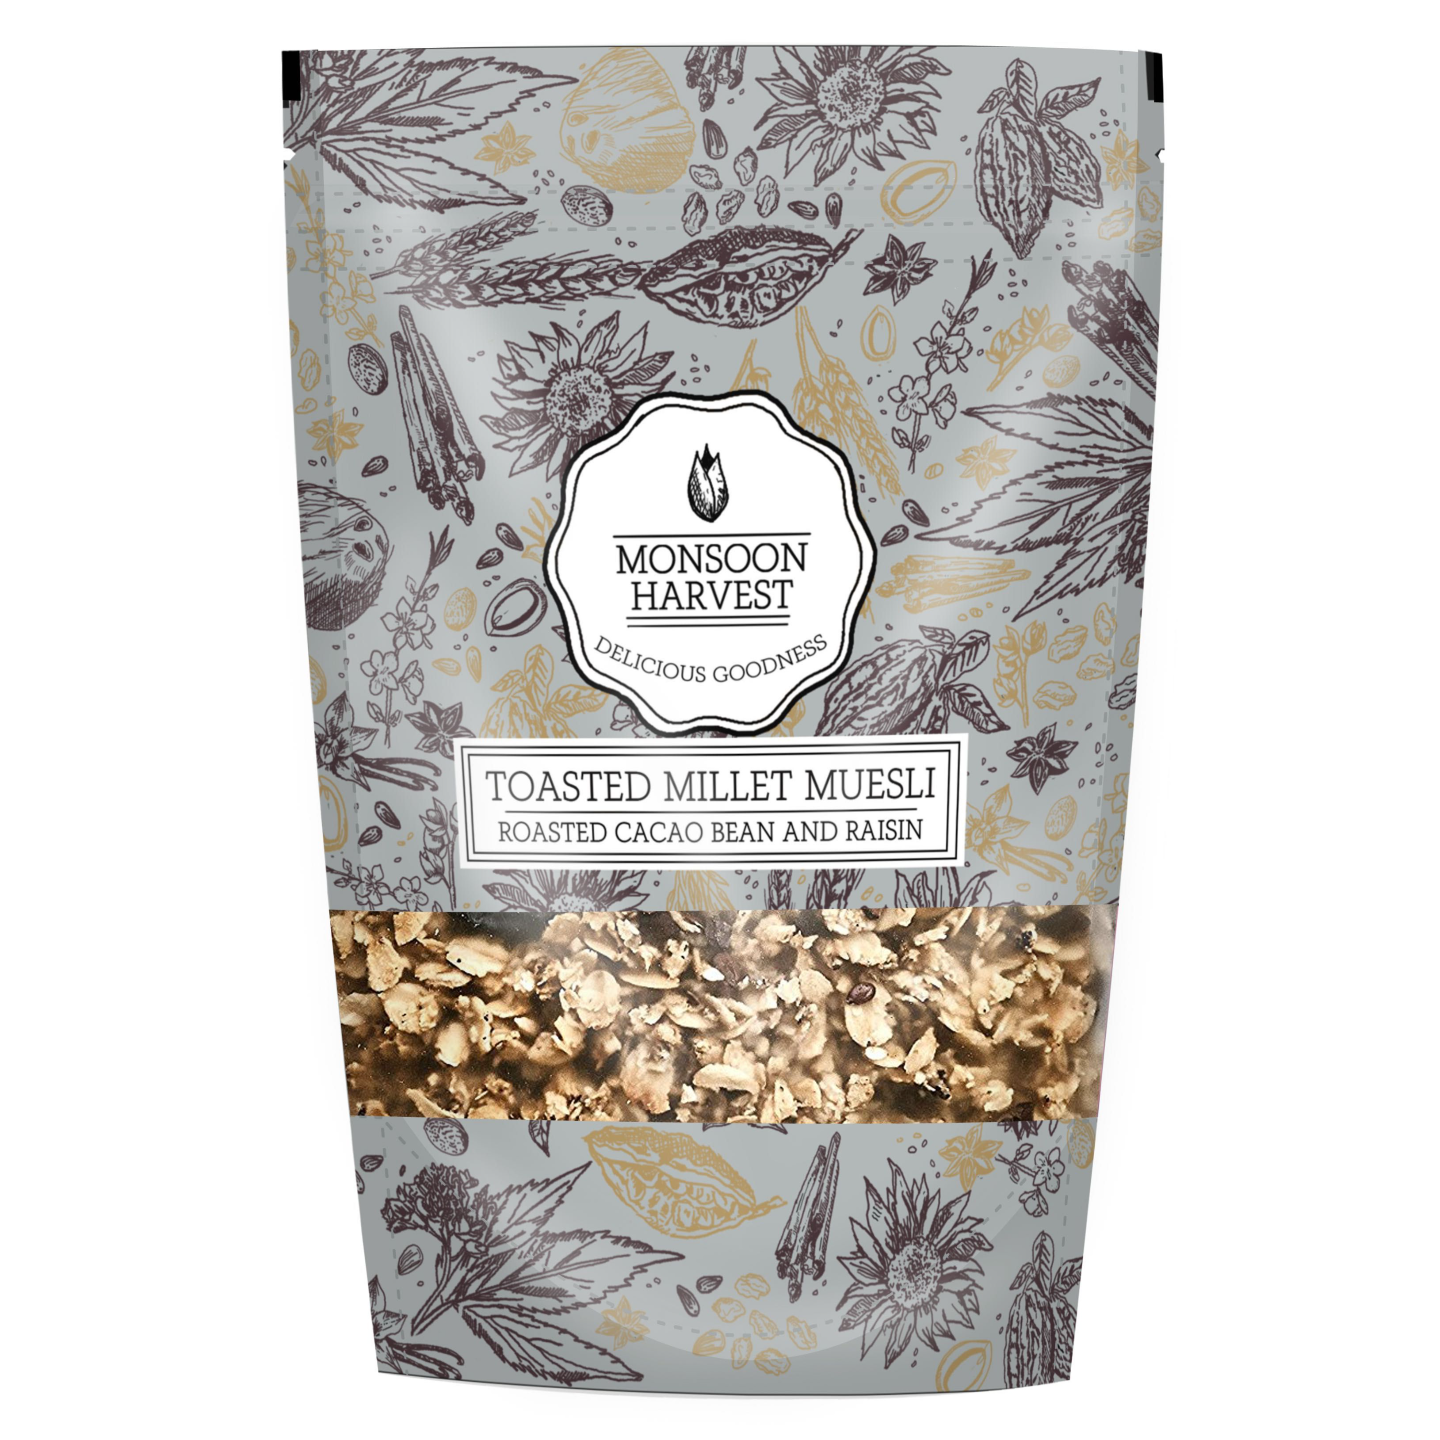 Toasted Millet Muesli Roasted Cacao Bean and Raisin